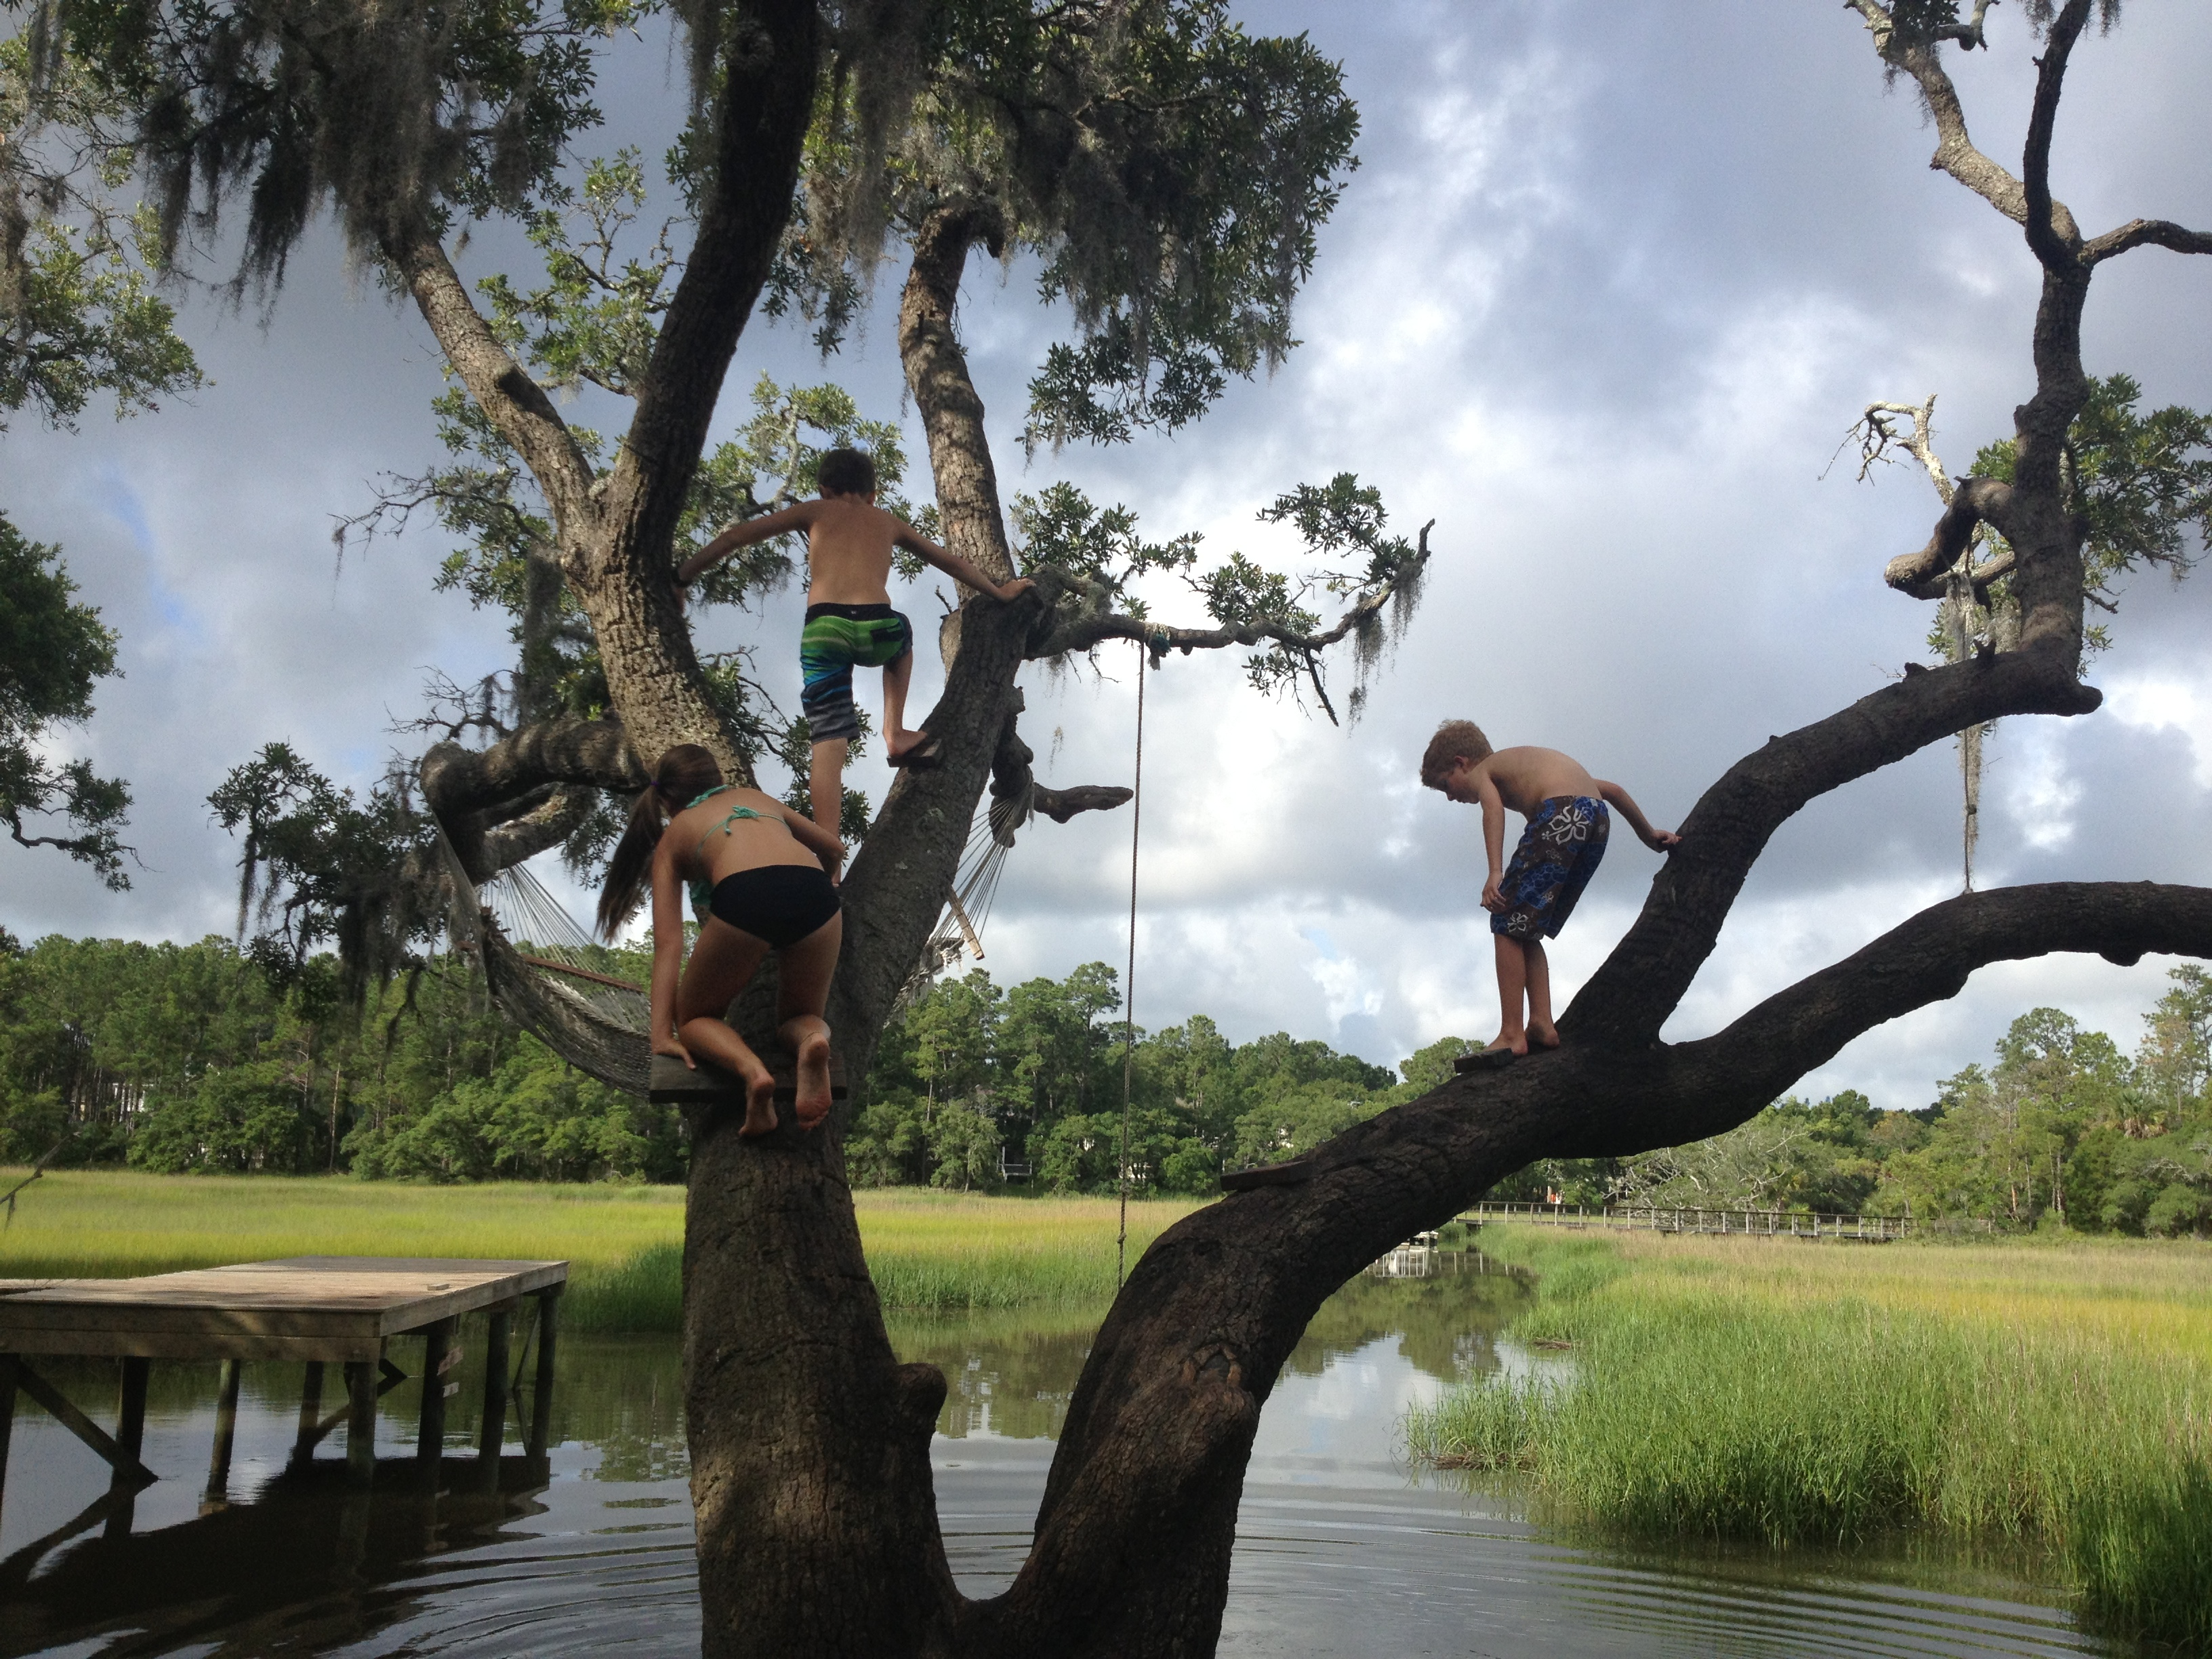 """FINALIST Amateur category: The Giving Tree by Julia Shealy; """"This old tree provided much adventure and fun for kids in my neighborhood.  They build rope swings, hammocks, and used it as a diving board to plunge into the creek below."""""""